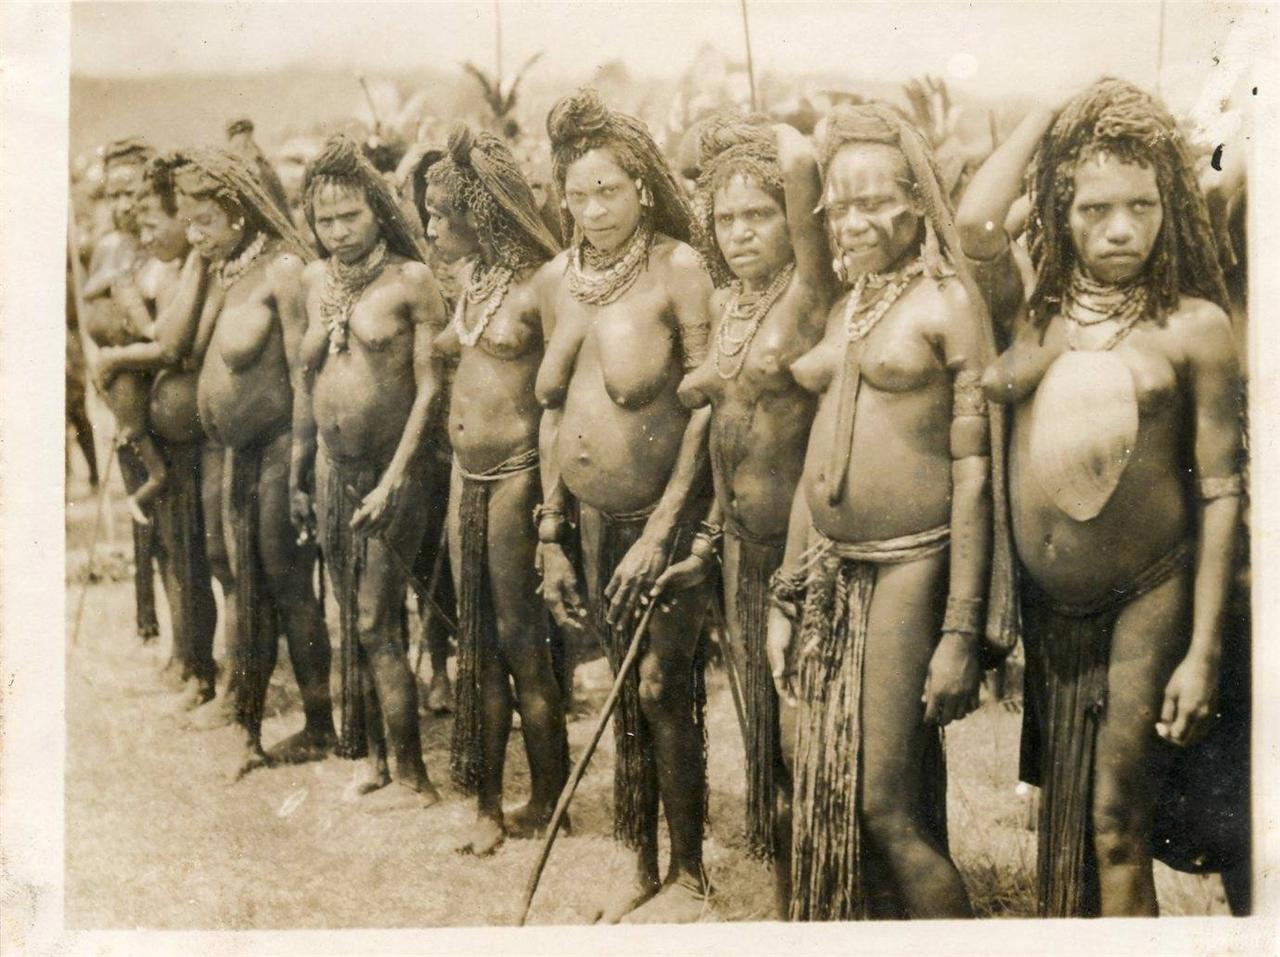 south pacific island natives nude